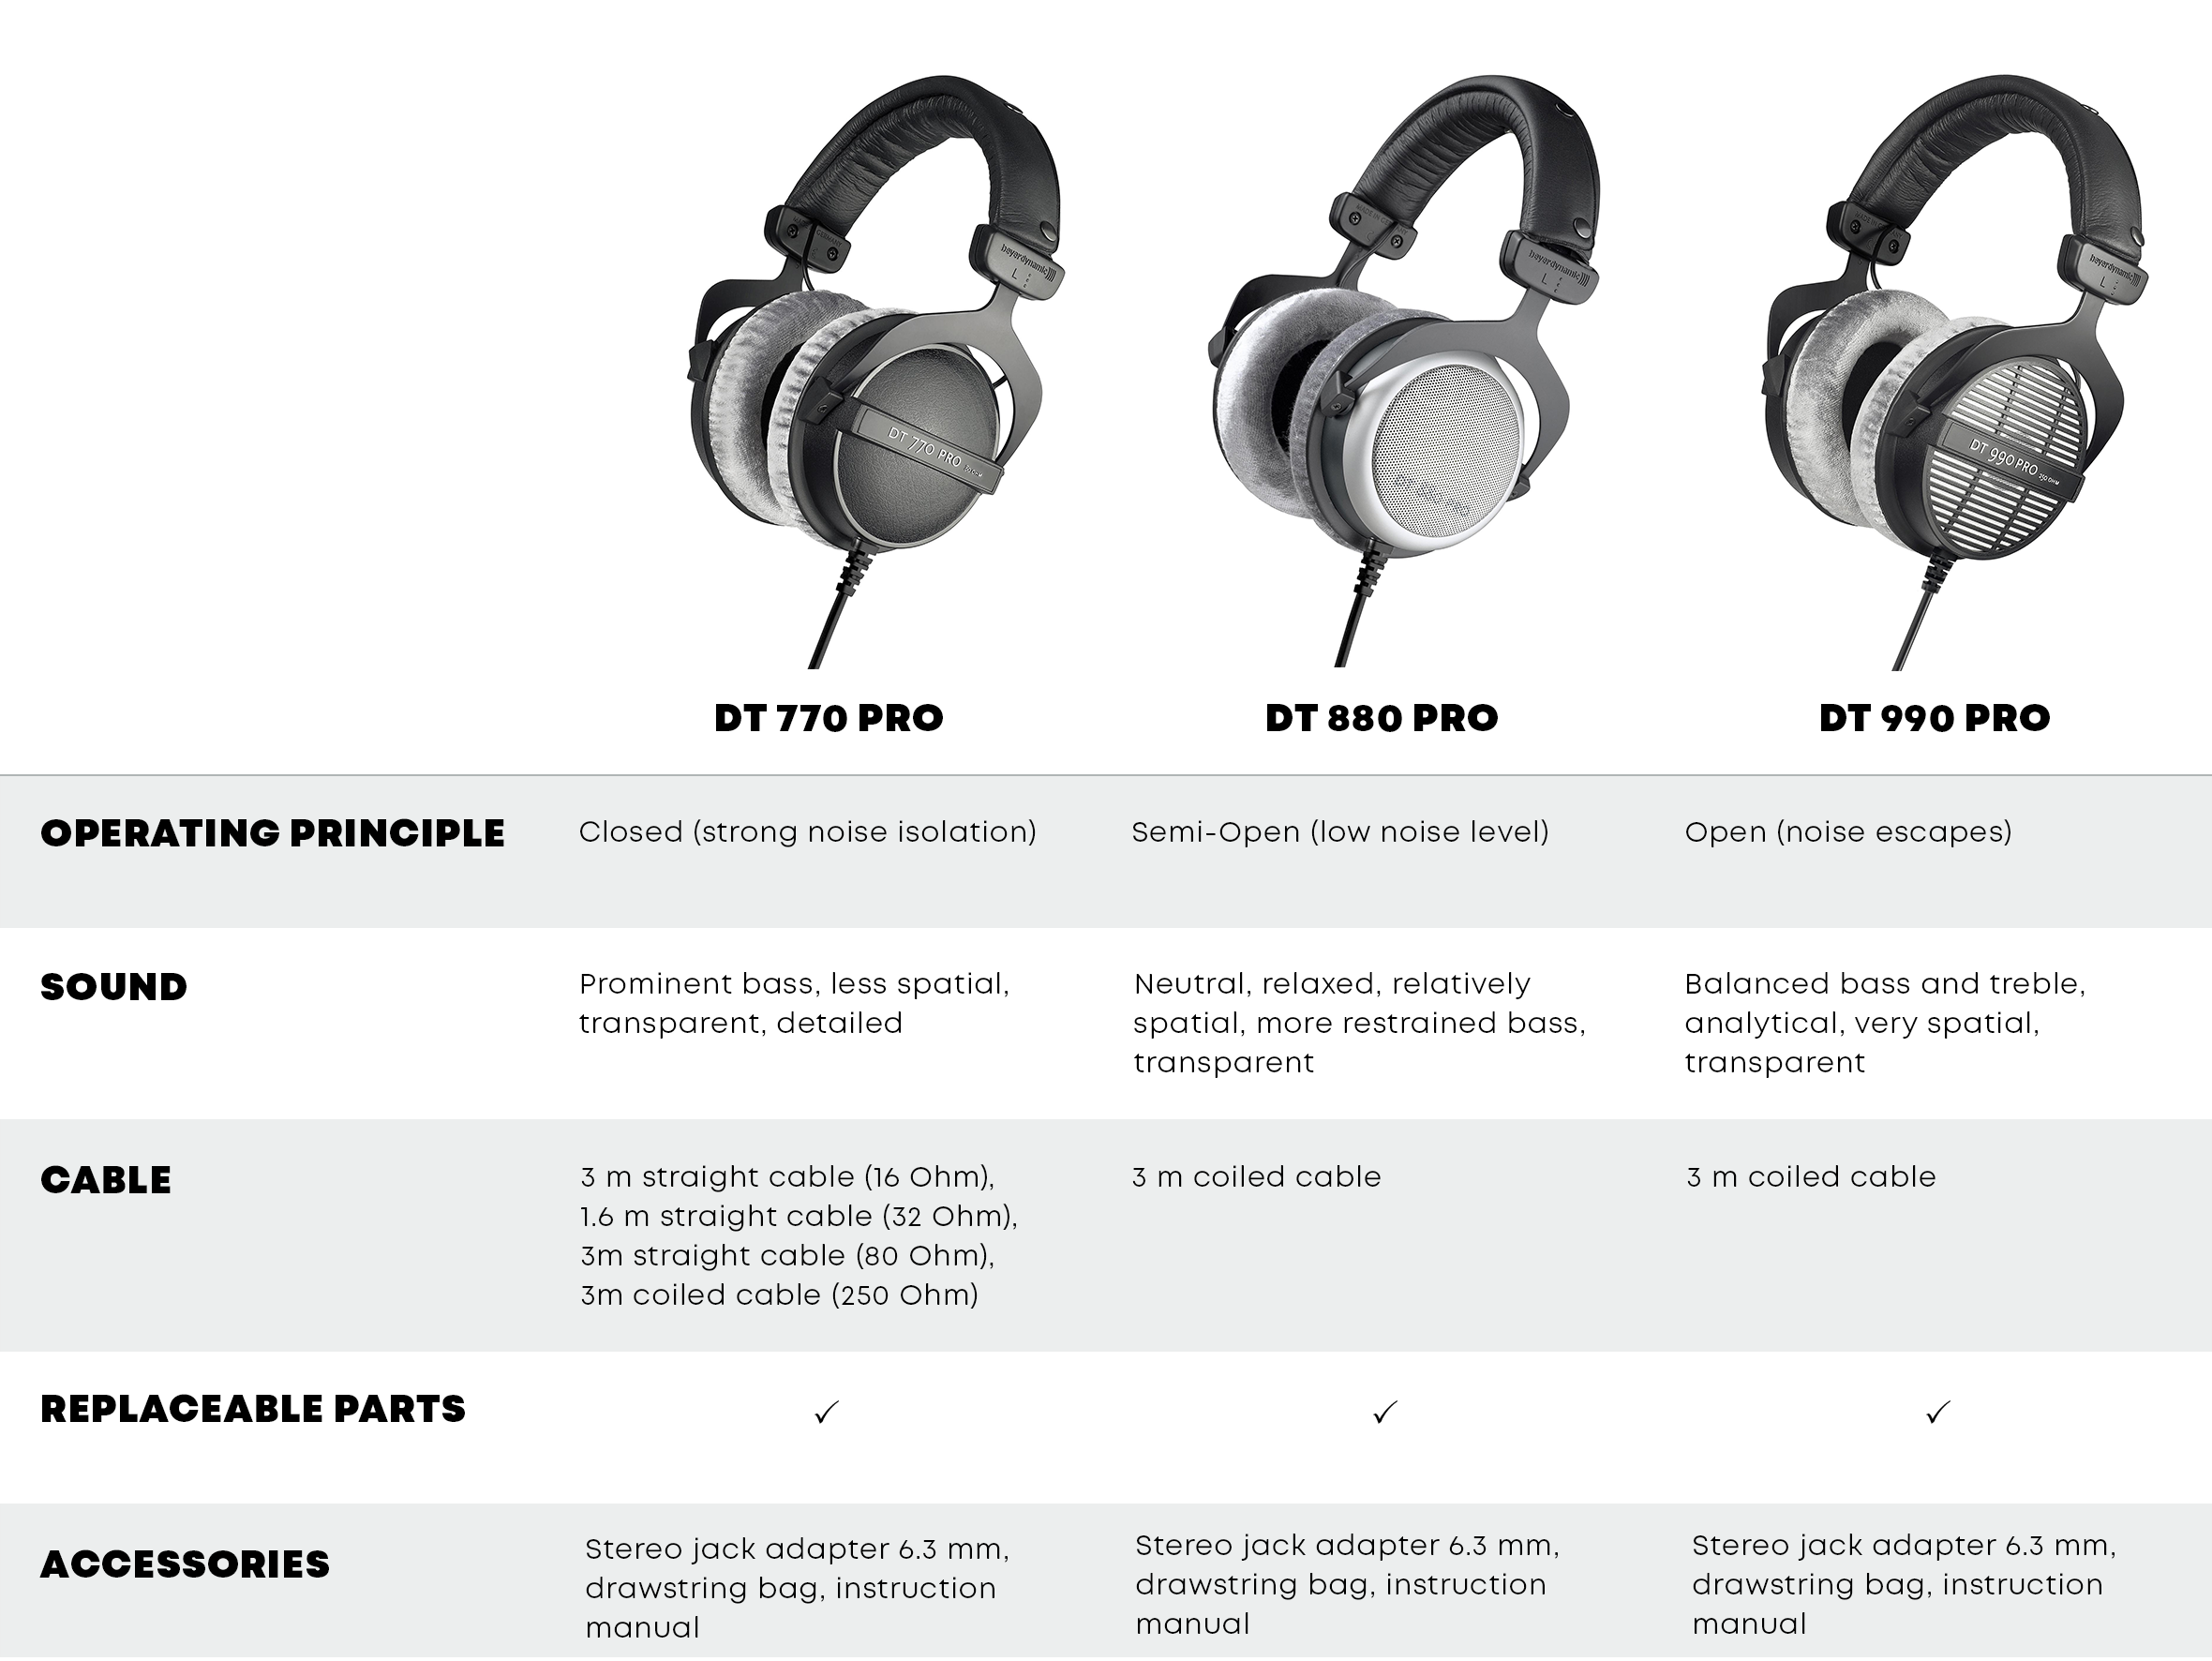 beyerdynamic-product-comparison-dt-770-880-990-pro-xl-3.png